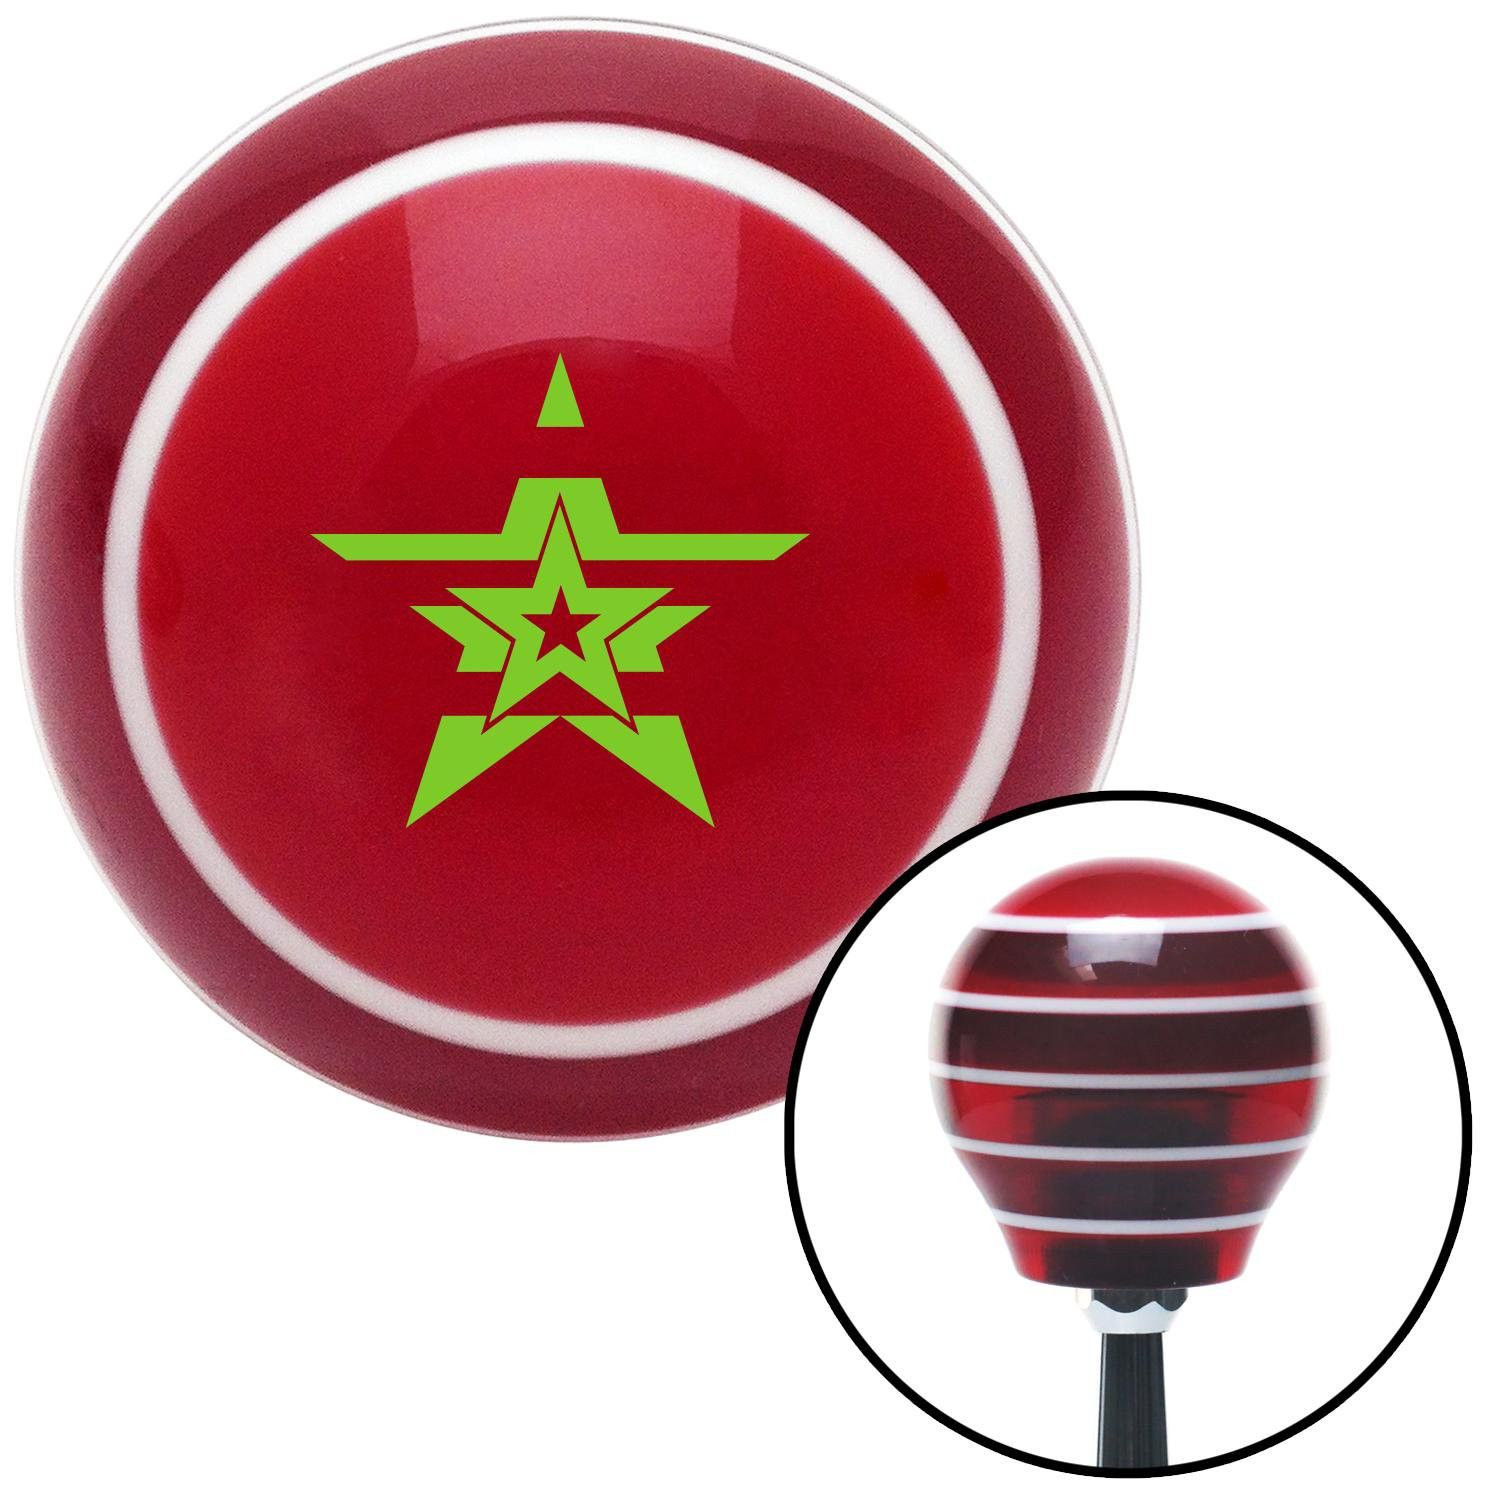 Green Star in a Star in a Star Red Stripe Shift Knob with M16 x 15 Insert - Give your interior the ultimate look. American Shifter's Elite(TM) series shift knobs are made from the highest quality components resulting in a superior feel on every shift. Each shift knob is designed and customized in the USA by skilled shift knob artisans who have a trained eye on every detail. American Shifters shift knobs offers an exclusive aluminum threaded insert designed to be screwed onto your shift arm…